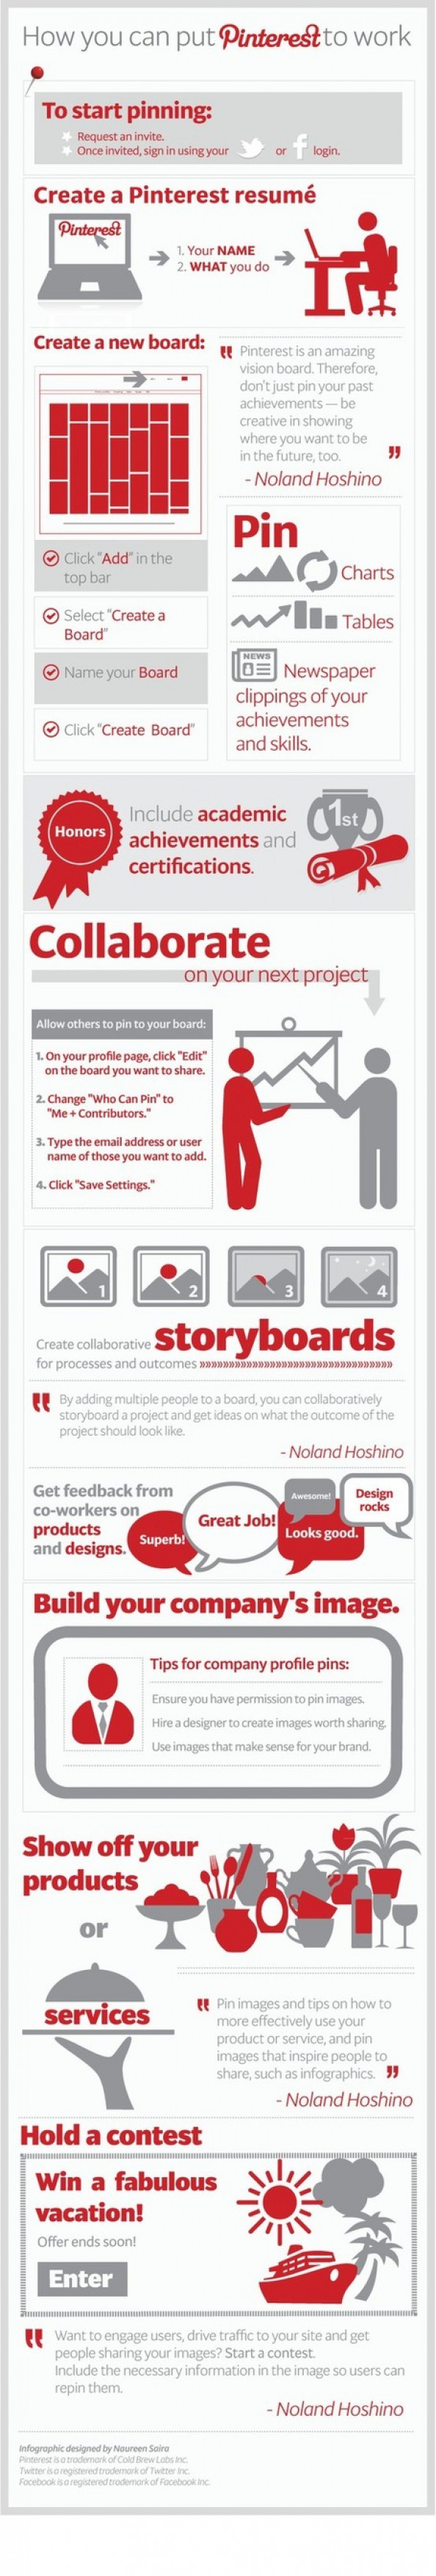 Networking Social Medias - Infographic: How to put Pinterest to work